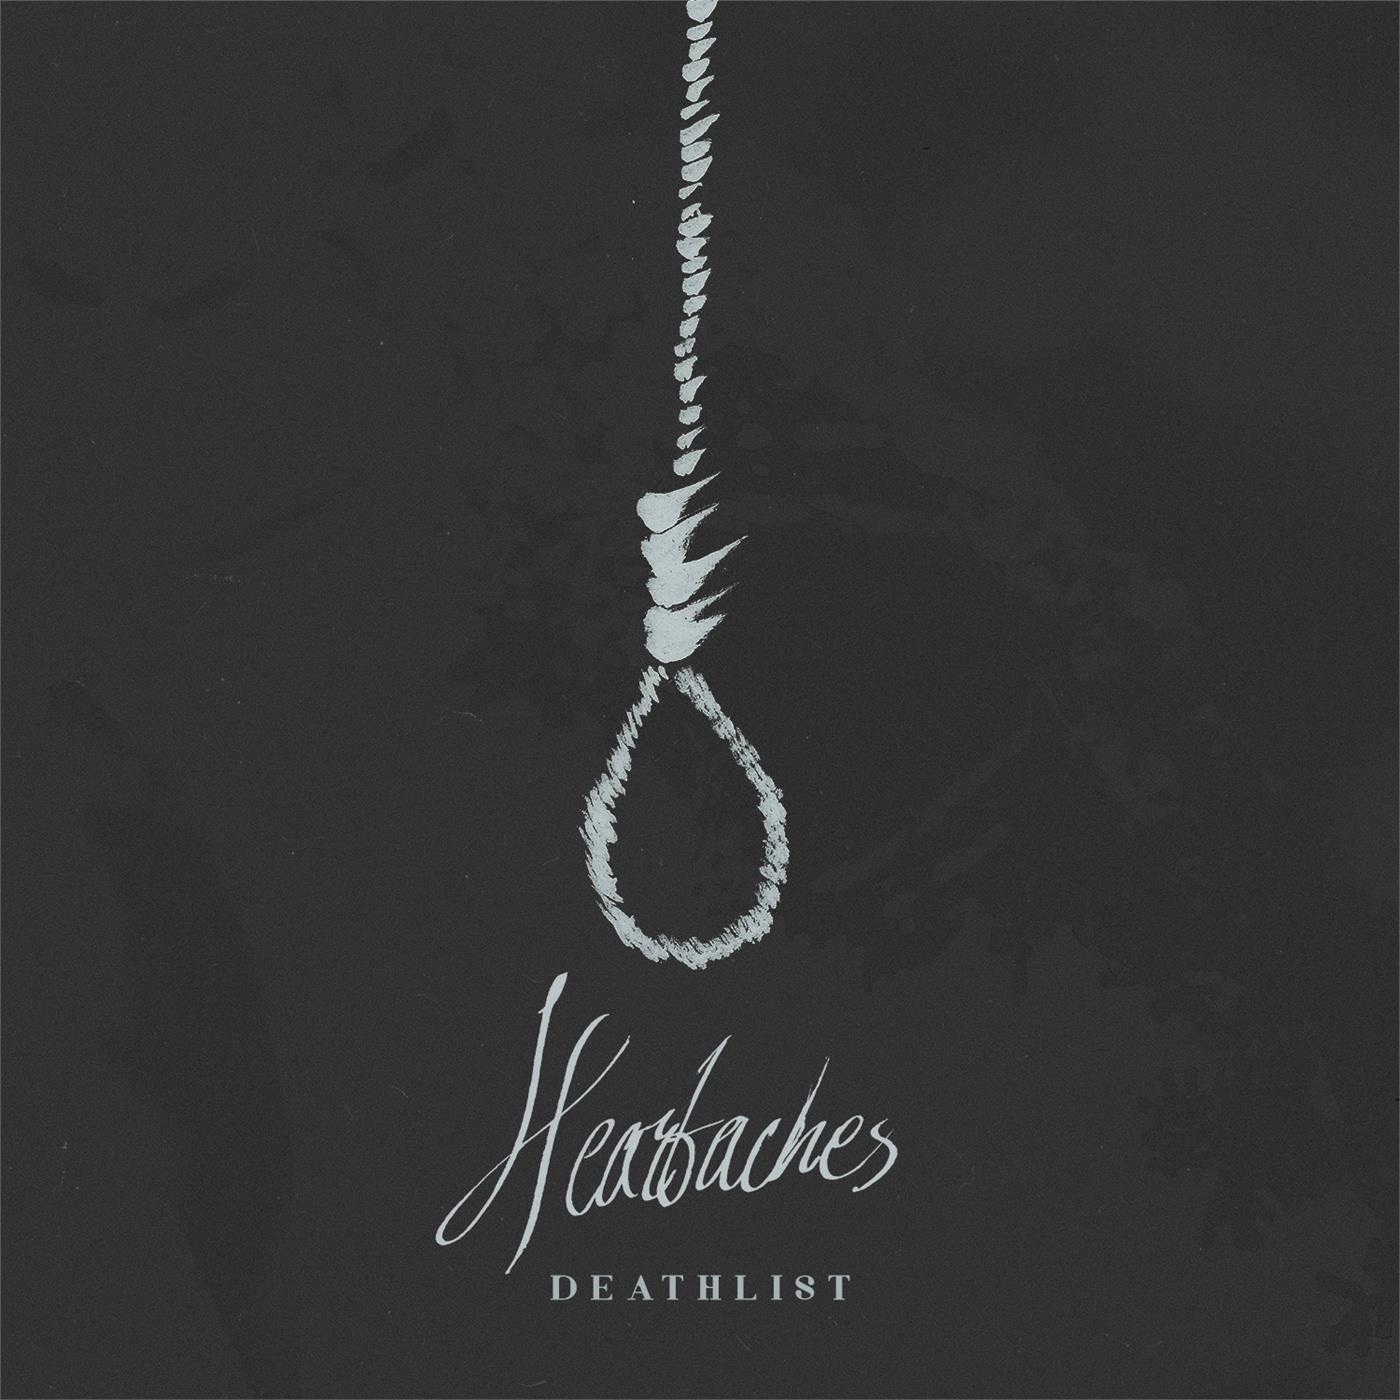 Heartaches – Deathlist [Single] (2015)